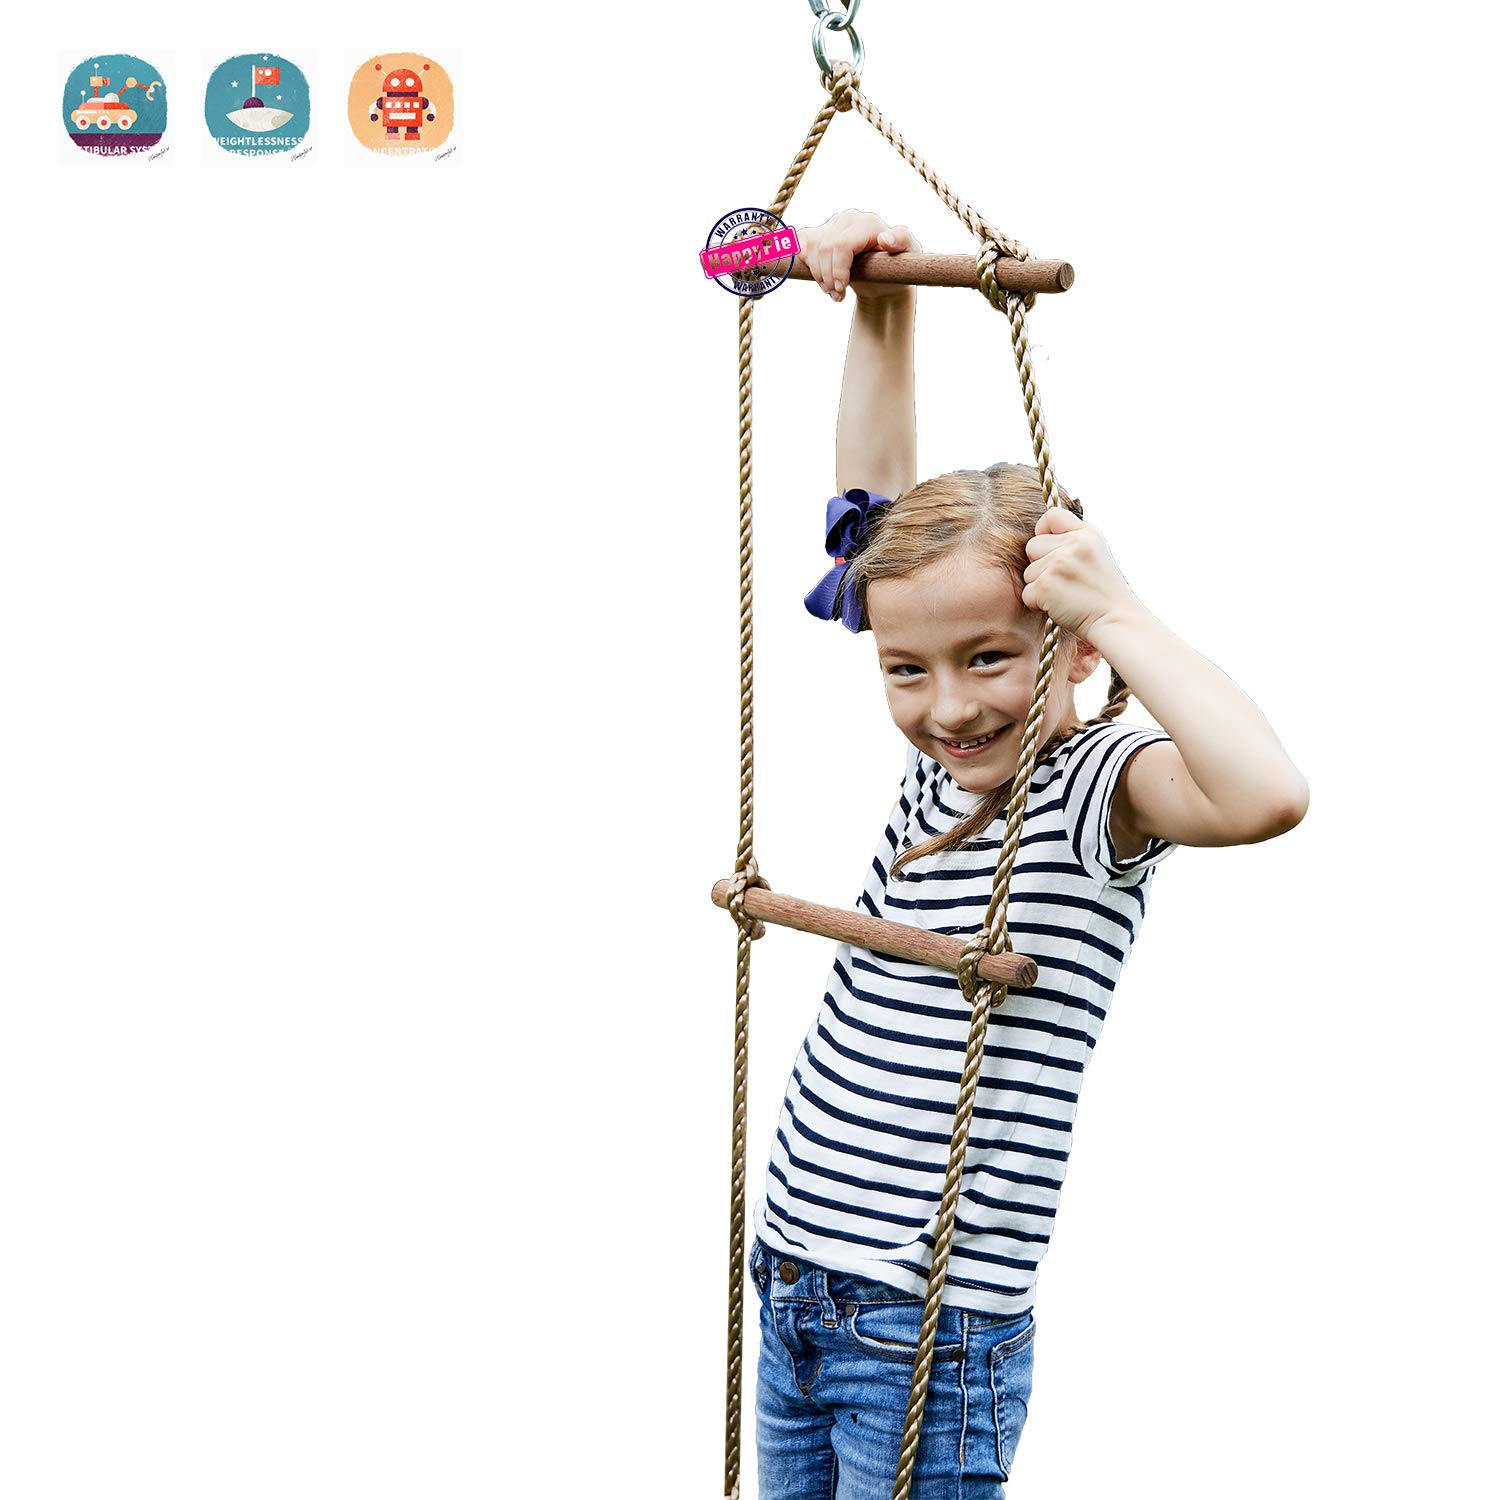 HAPPY PIE PLAY&ADVENTURE Playground Climbing Wooden Rope Ladder for Kids Indoor/Outdoor-64 Inch Length